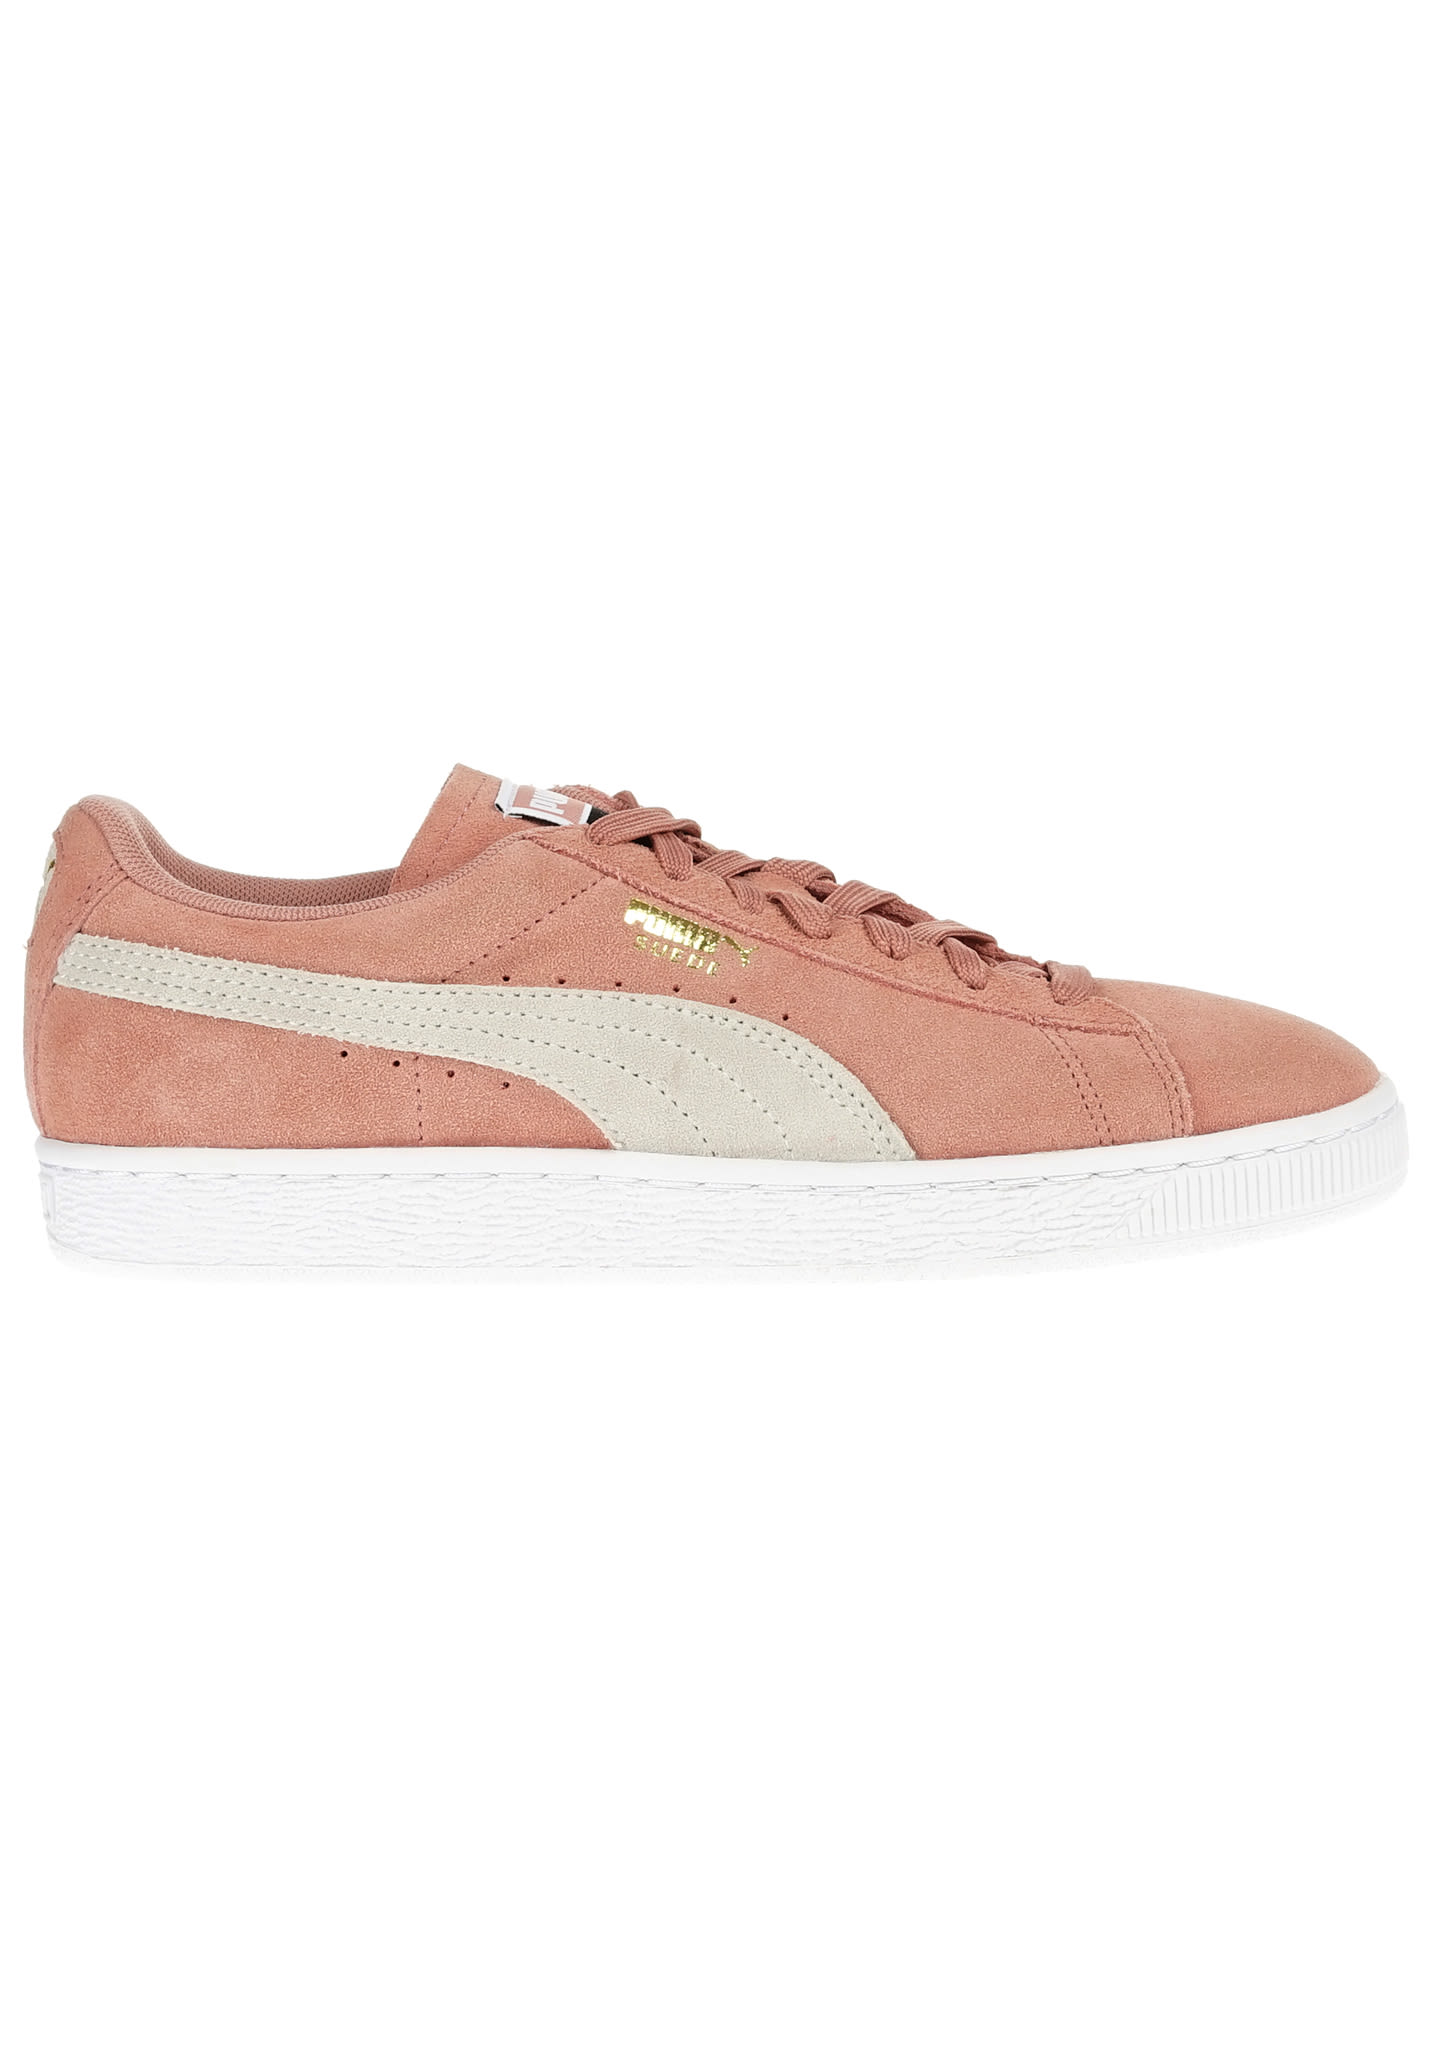 sports shoes 256e4 1a98c Puma Suede Classic - Sneakers for Women - Pink